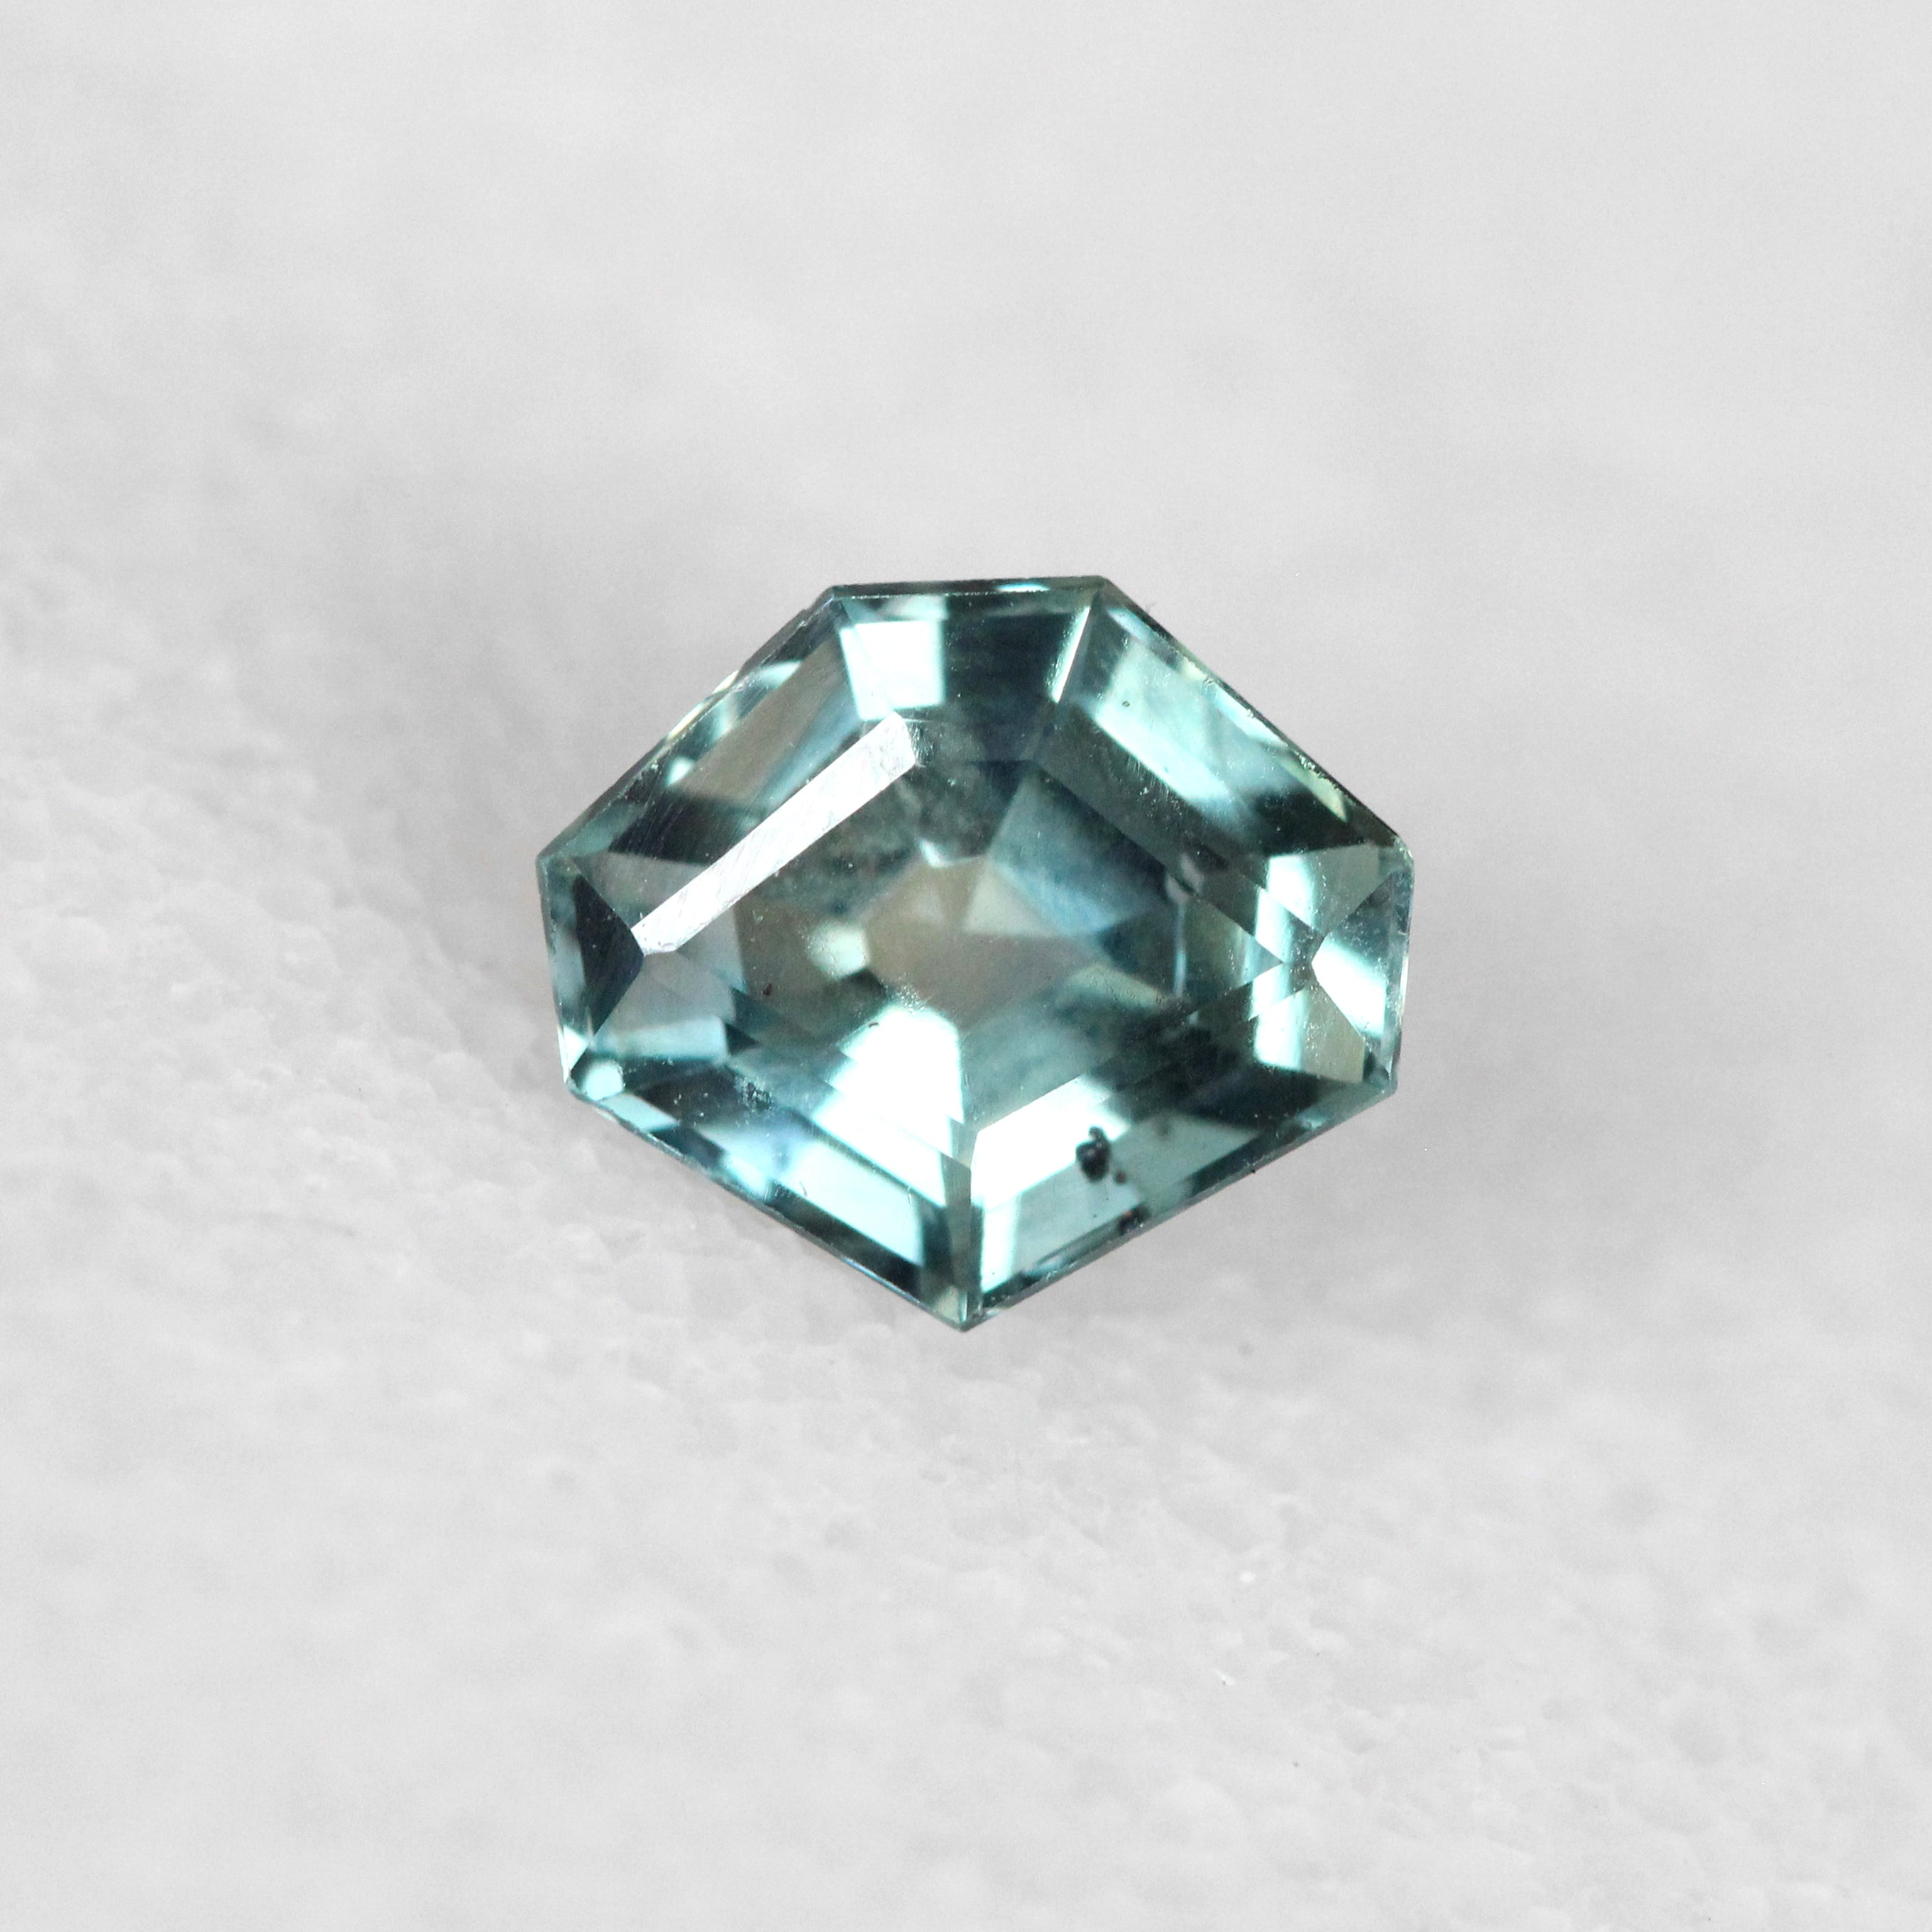 1.25 carat Geometric Shaped Teal Sapphire for Custom Work - Inventory Code SAP125 - Salt & Pepper Celestial Diamond Engagement Rings and Wedding Bands  by Midwinter Co.